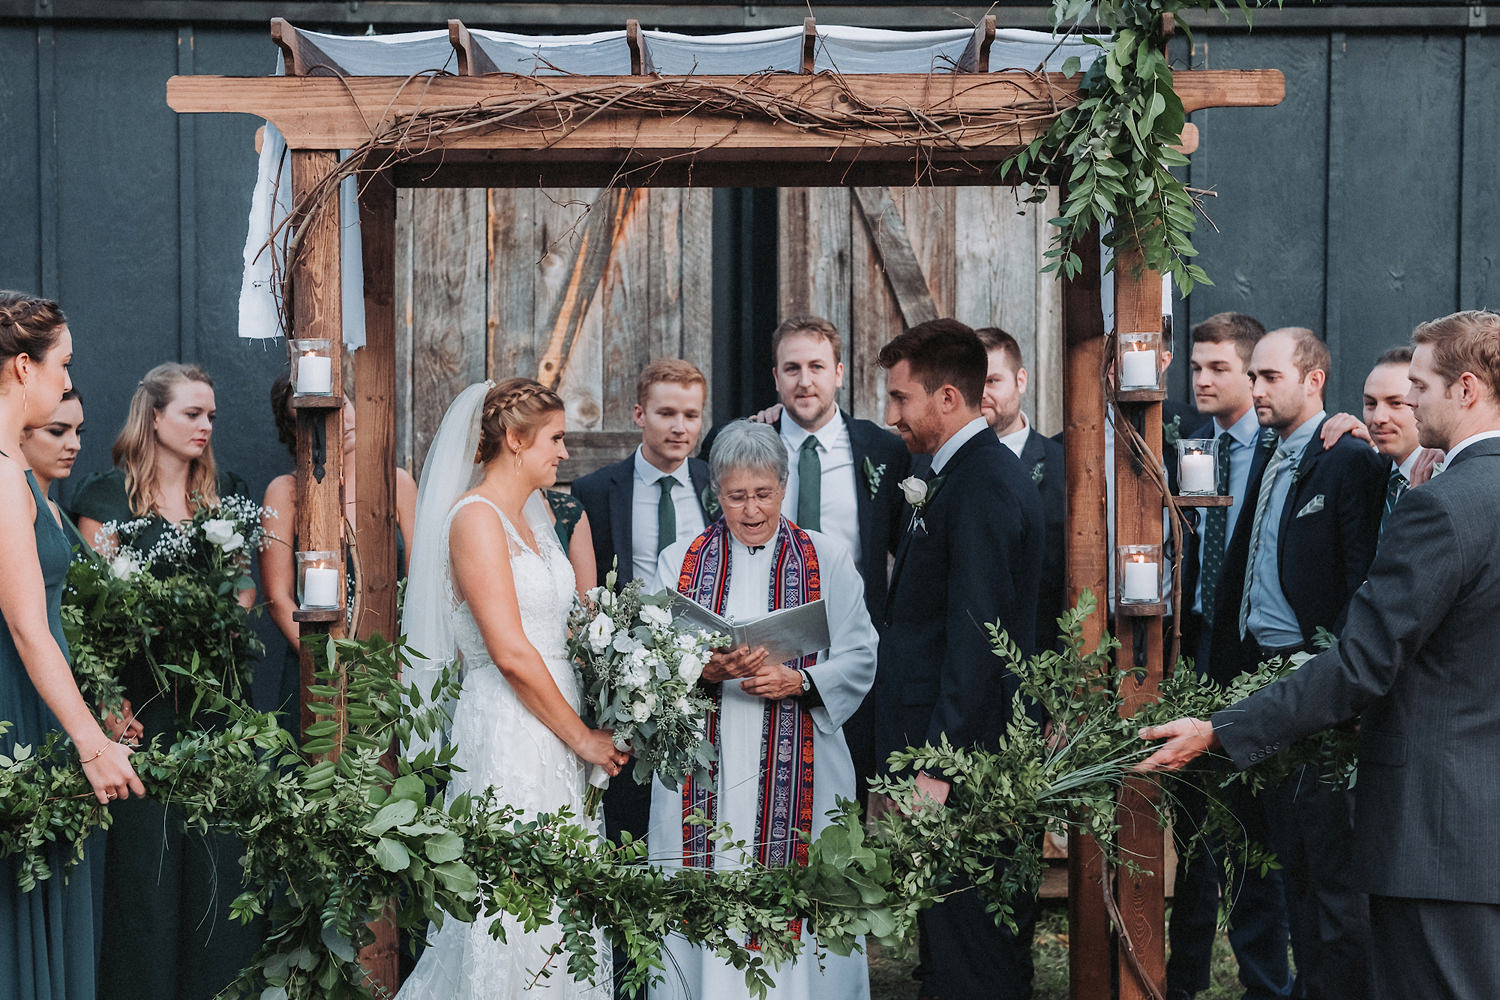 Carley & Ben's 1870 Farm Wedding